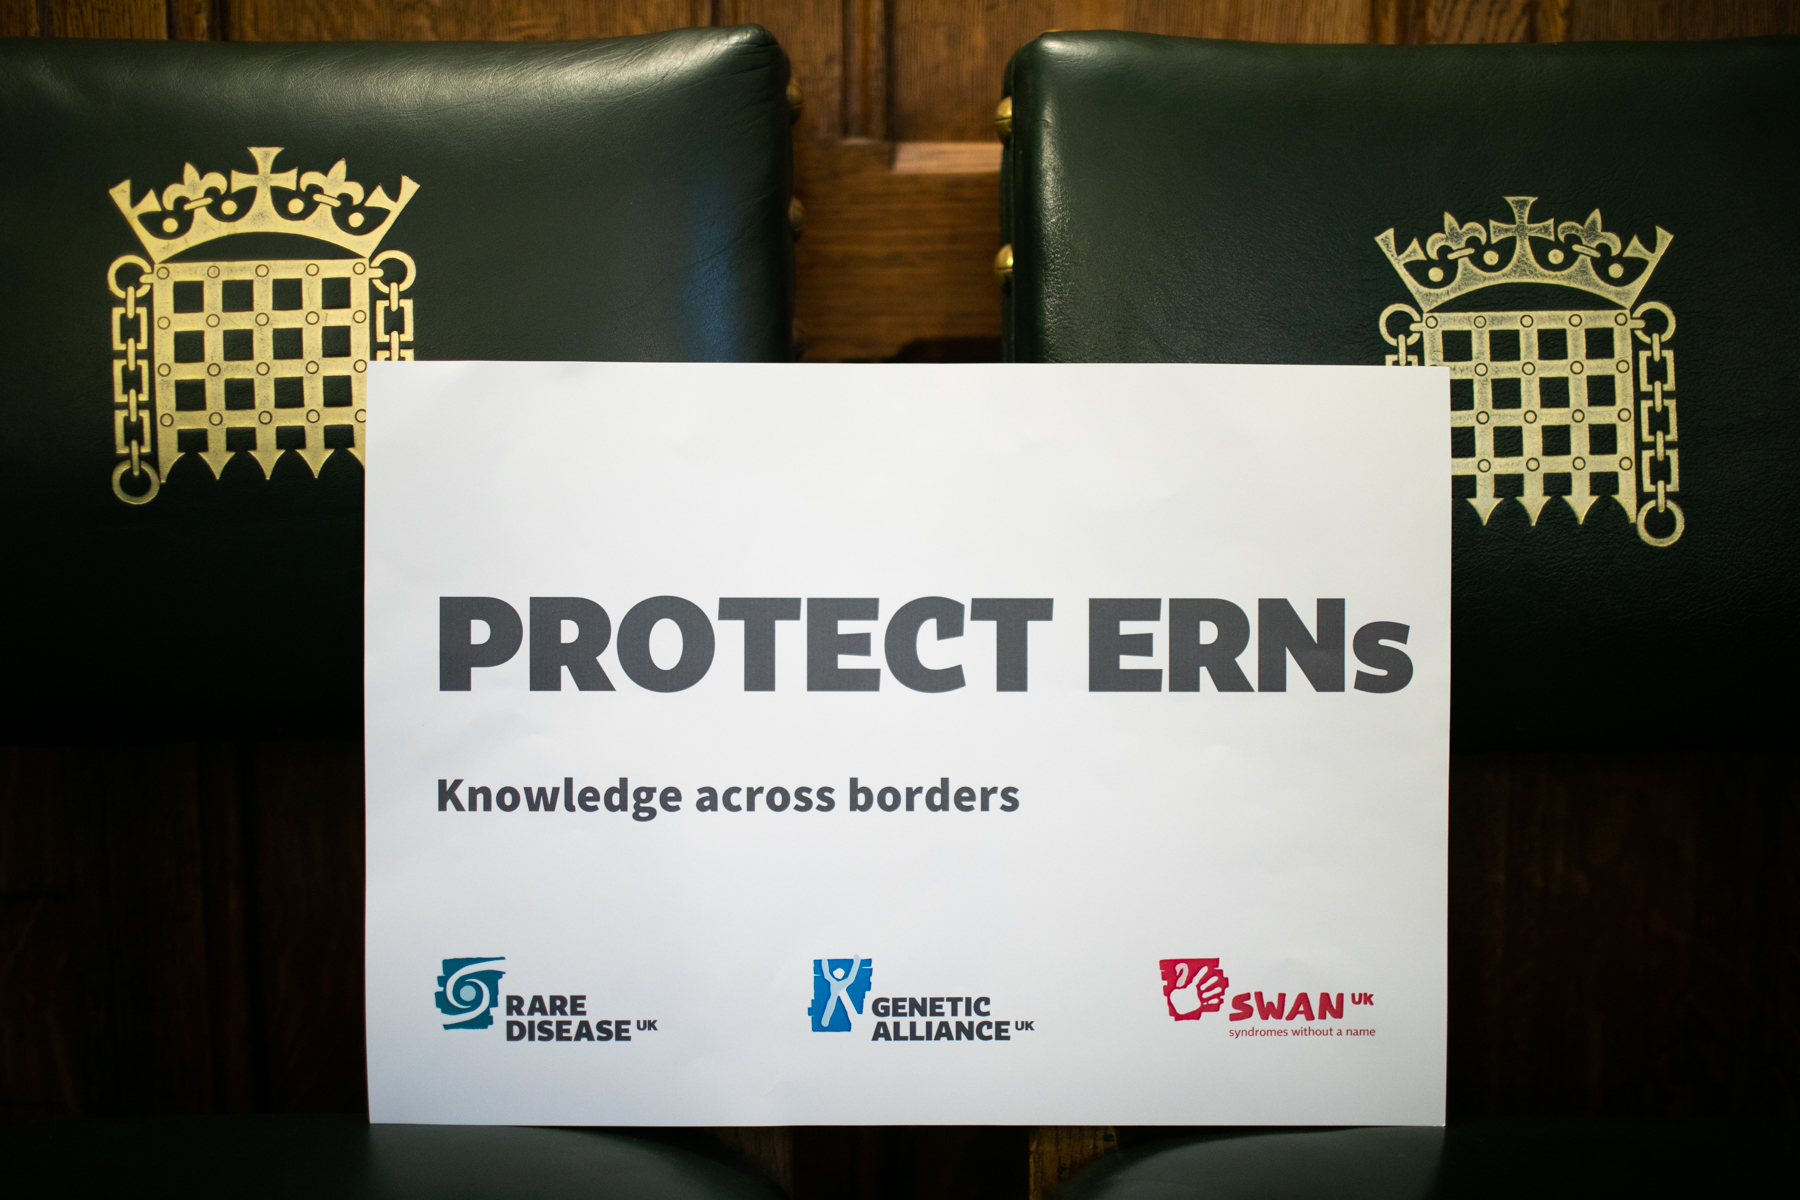 Protect ERNs